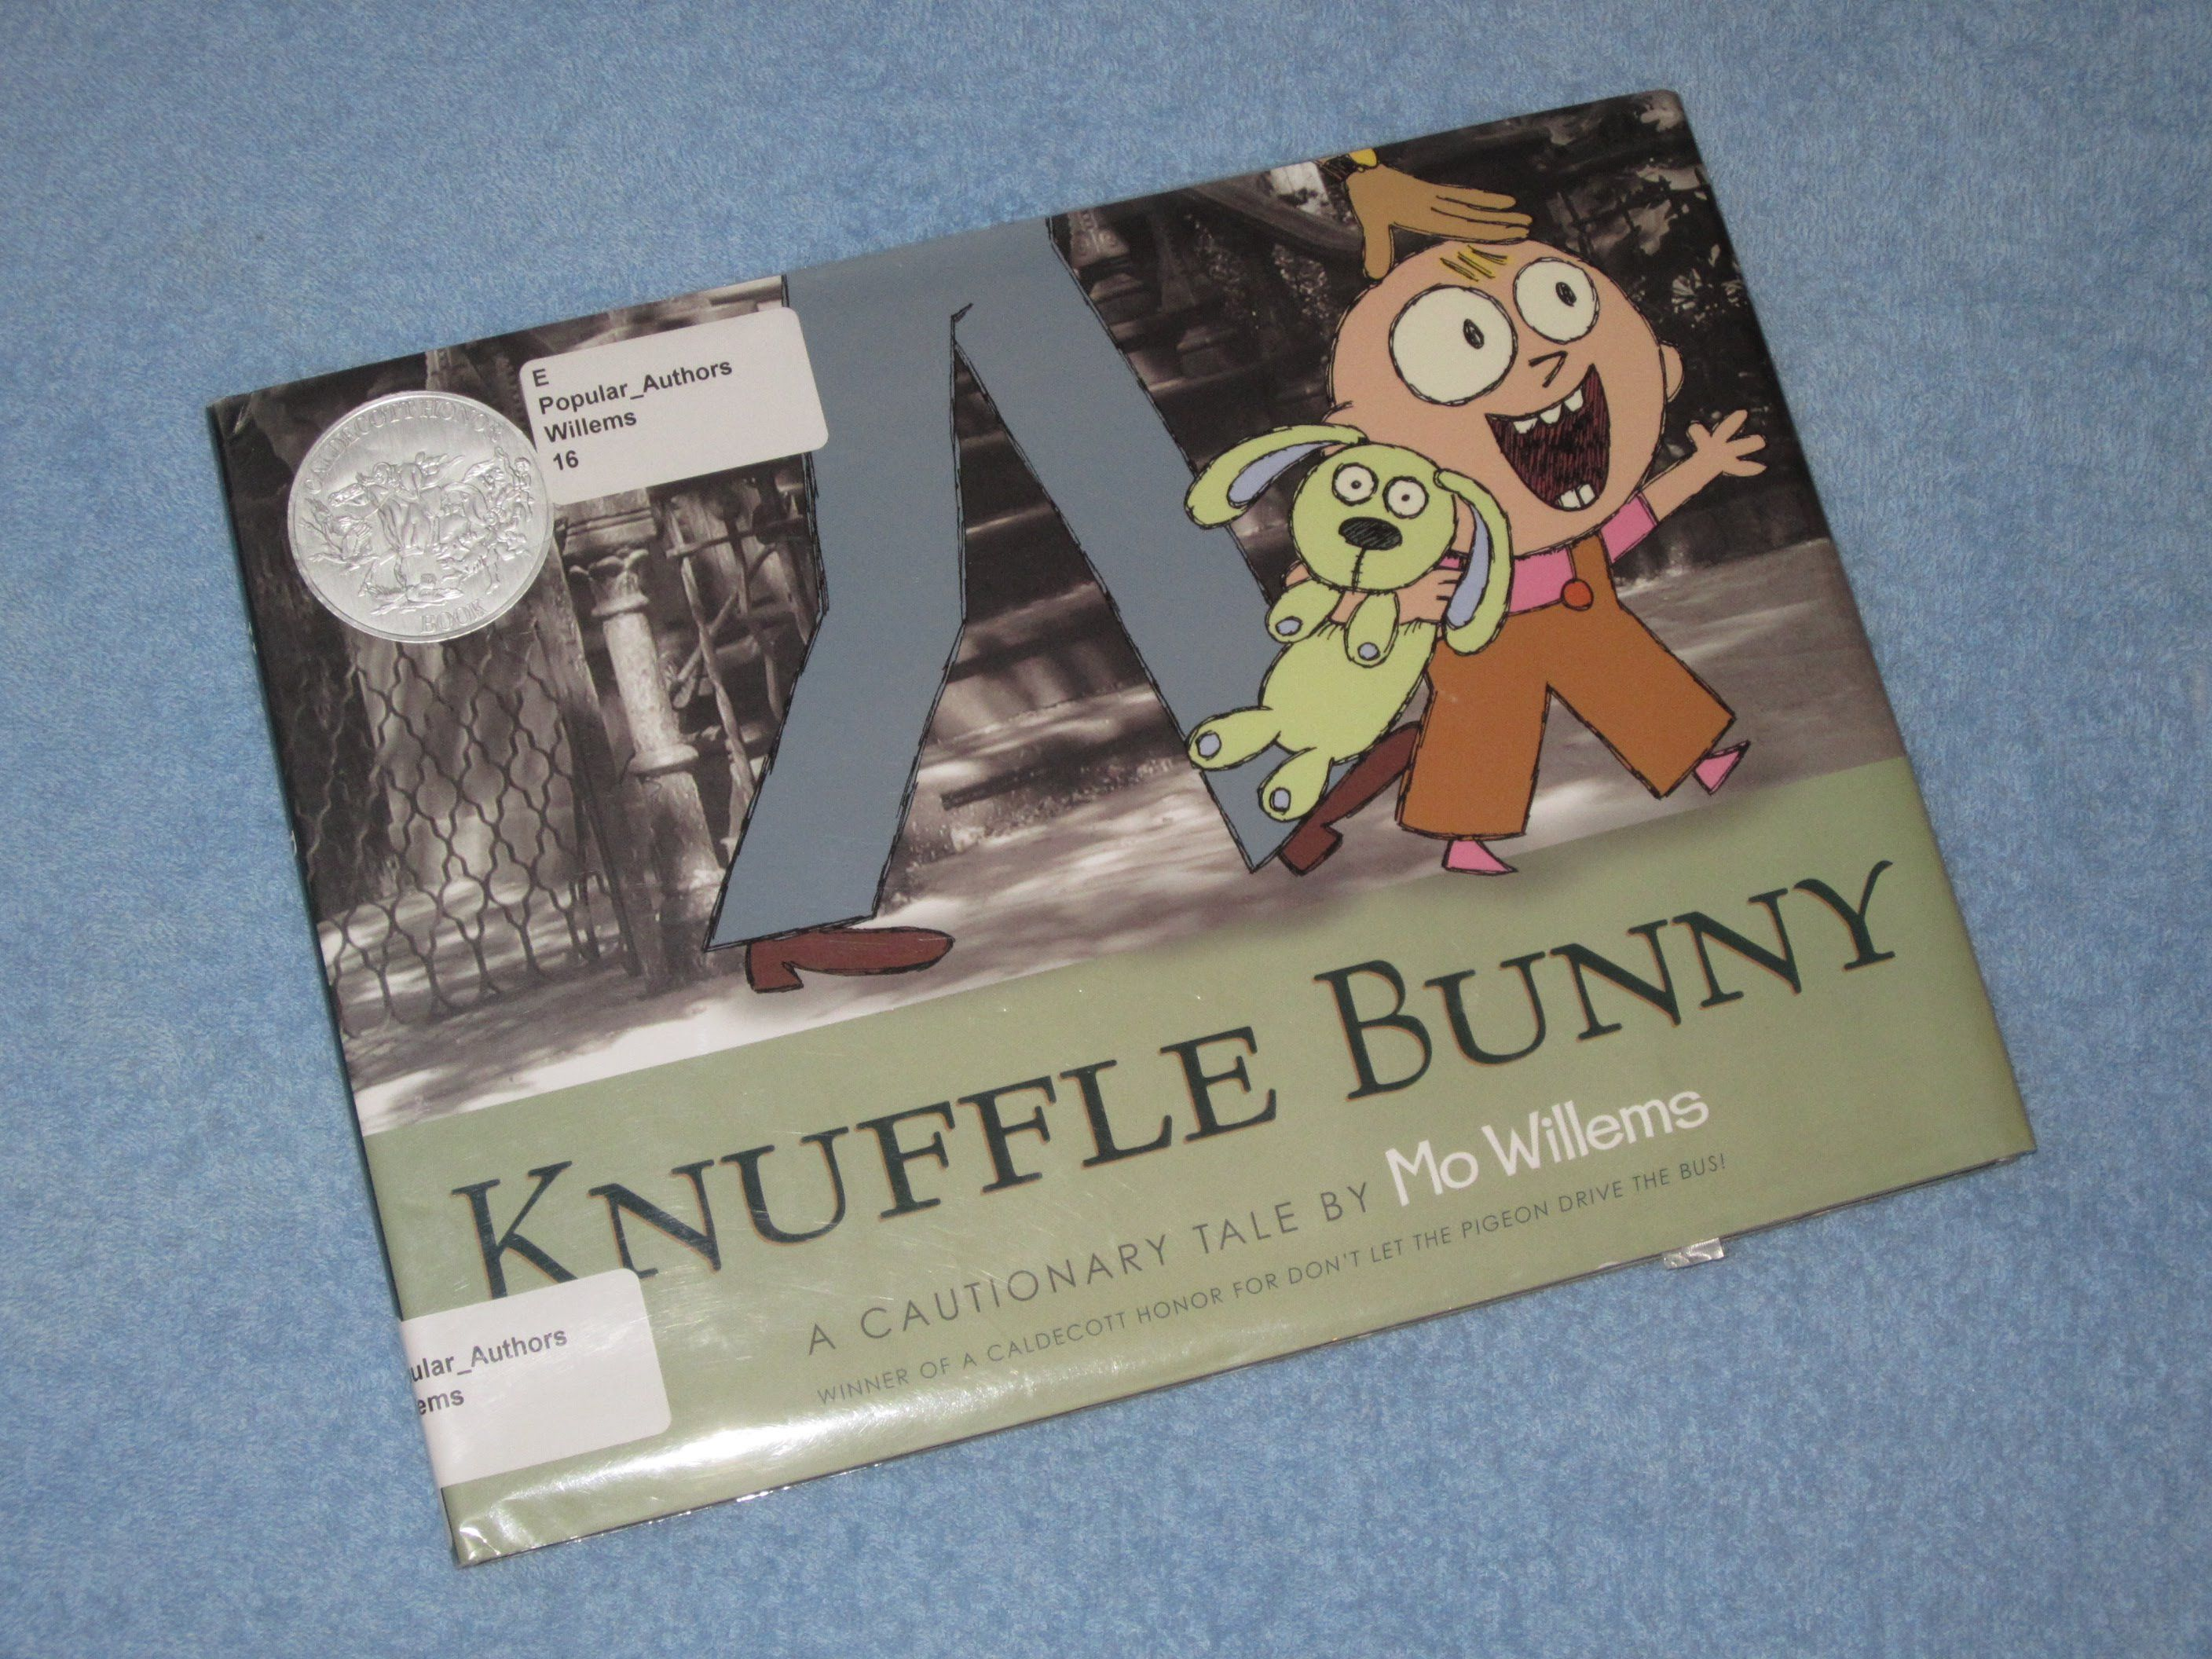 Knuffle bunny childrens read aloud story book for kids by